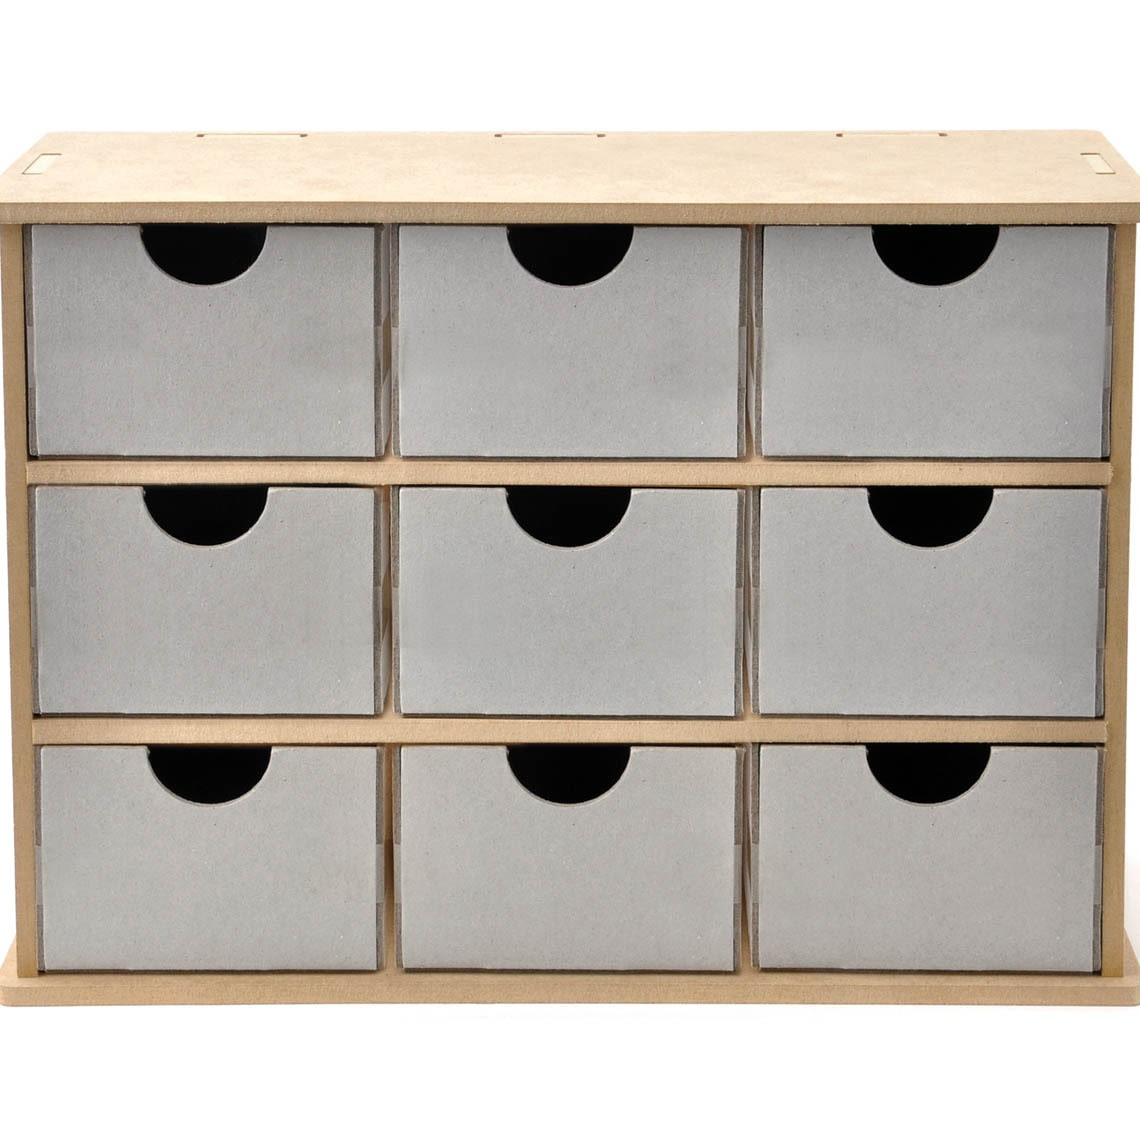 Kaisercraft Beyond The Page MDF Storage Drawers